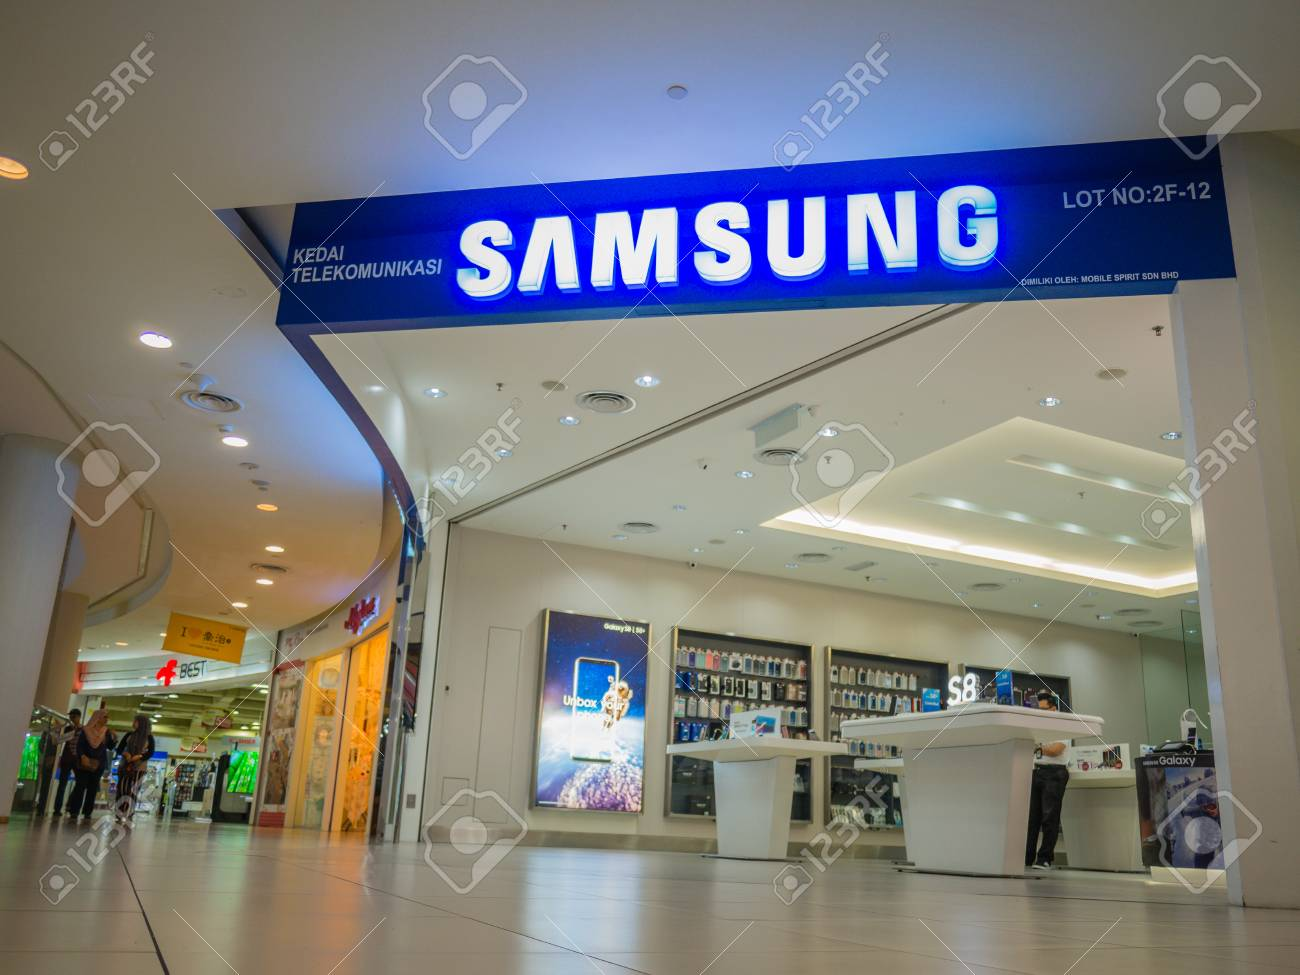 Penang, Malaysia - Aug 19, 2017: Samsung store in Shopping mall